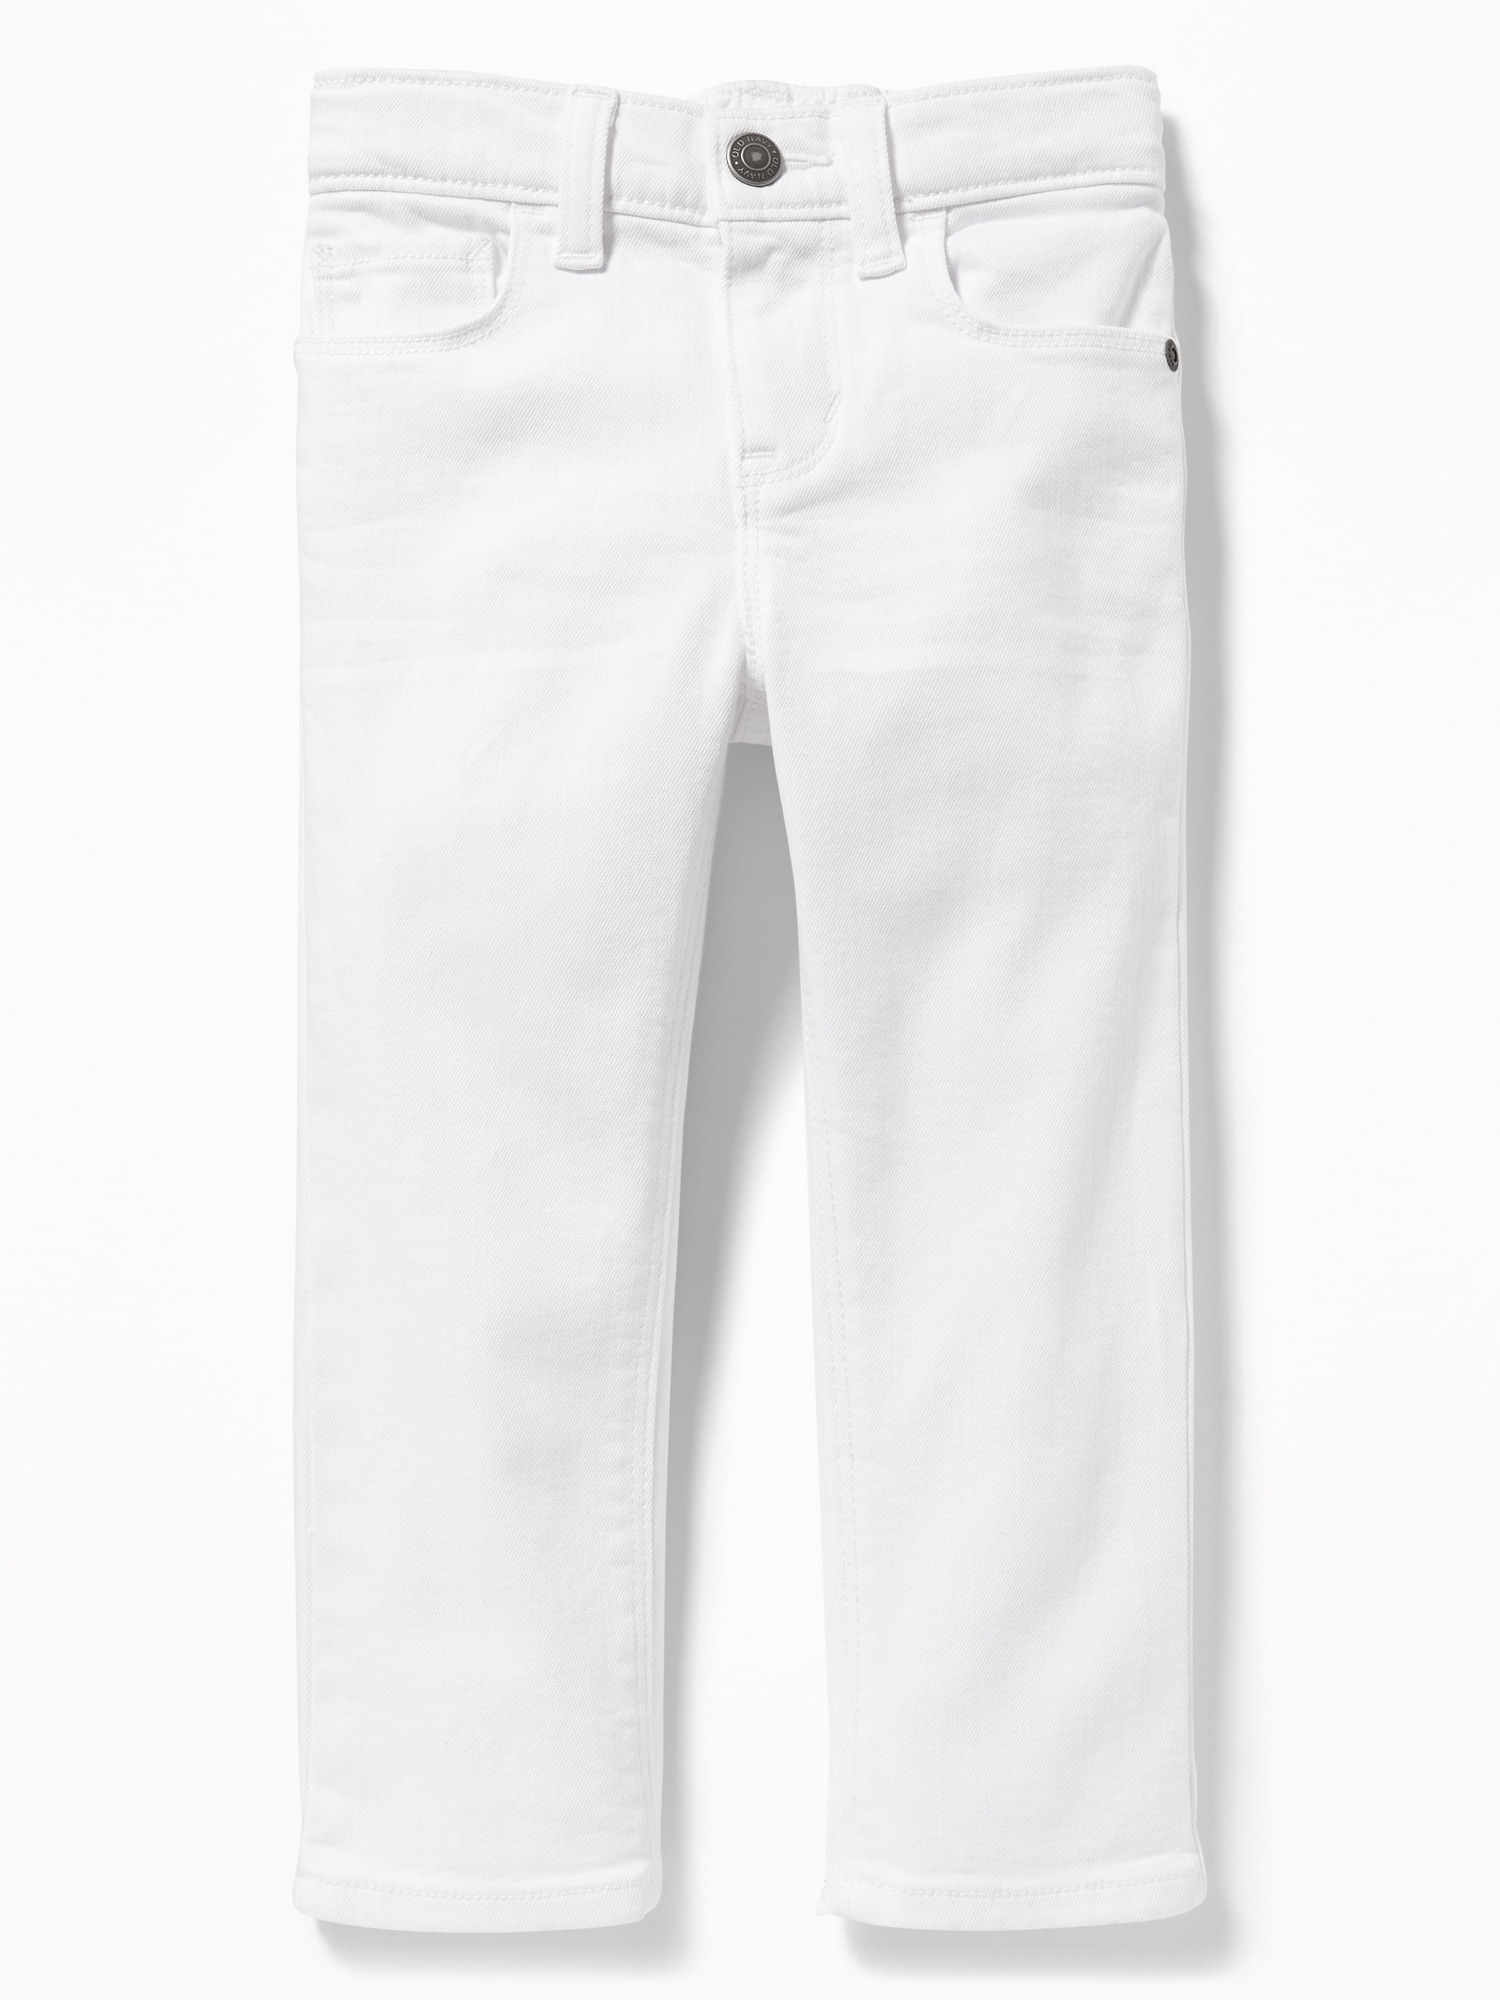 a7a43233cff Karate Built-In Flex Max Skinny White Jeans for Toddler Boys